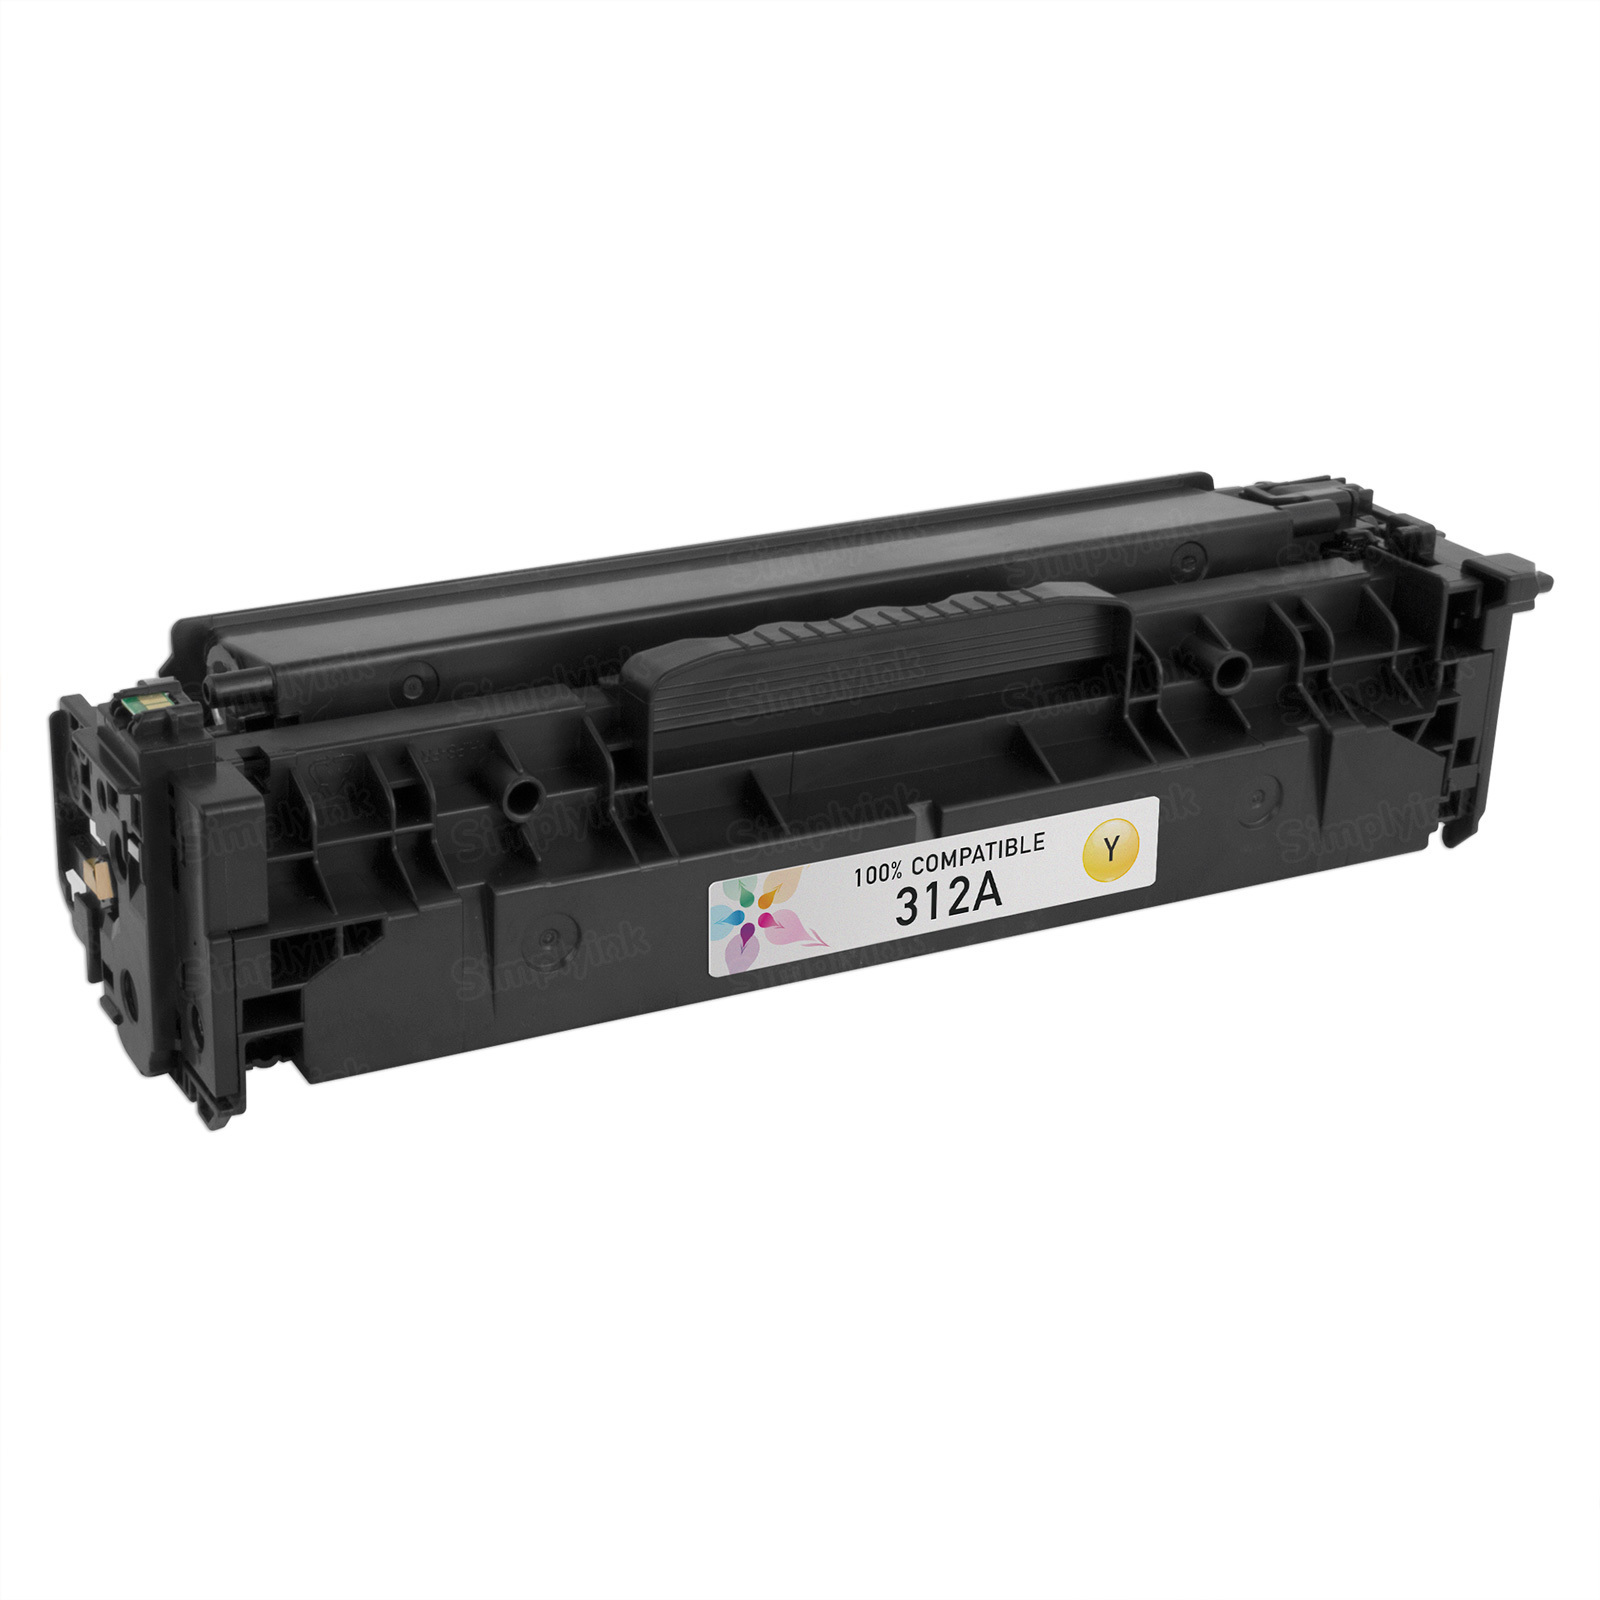 Replacement Yellow Toner for HP 312A